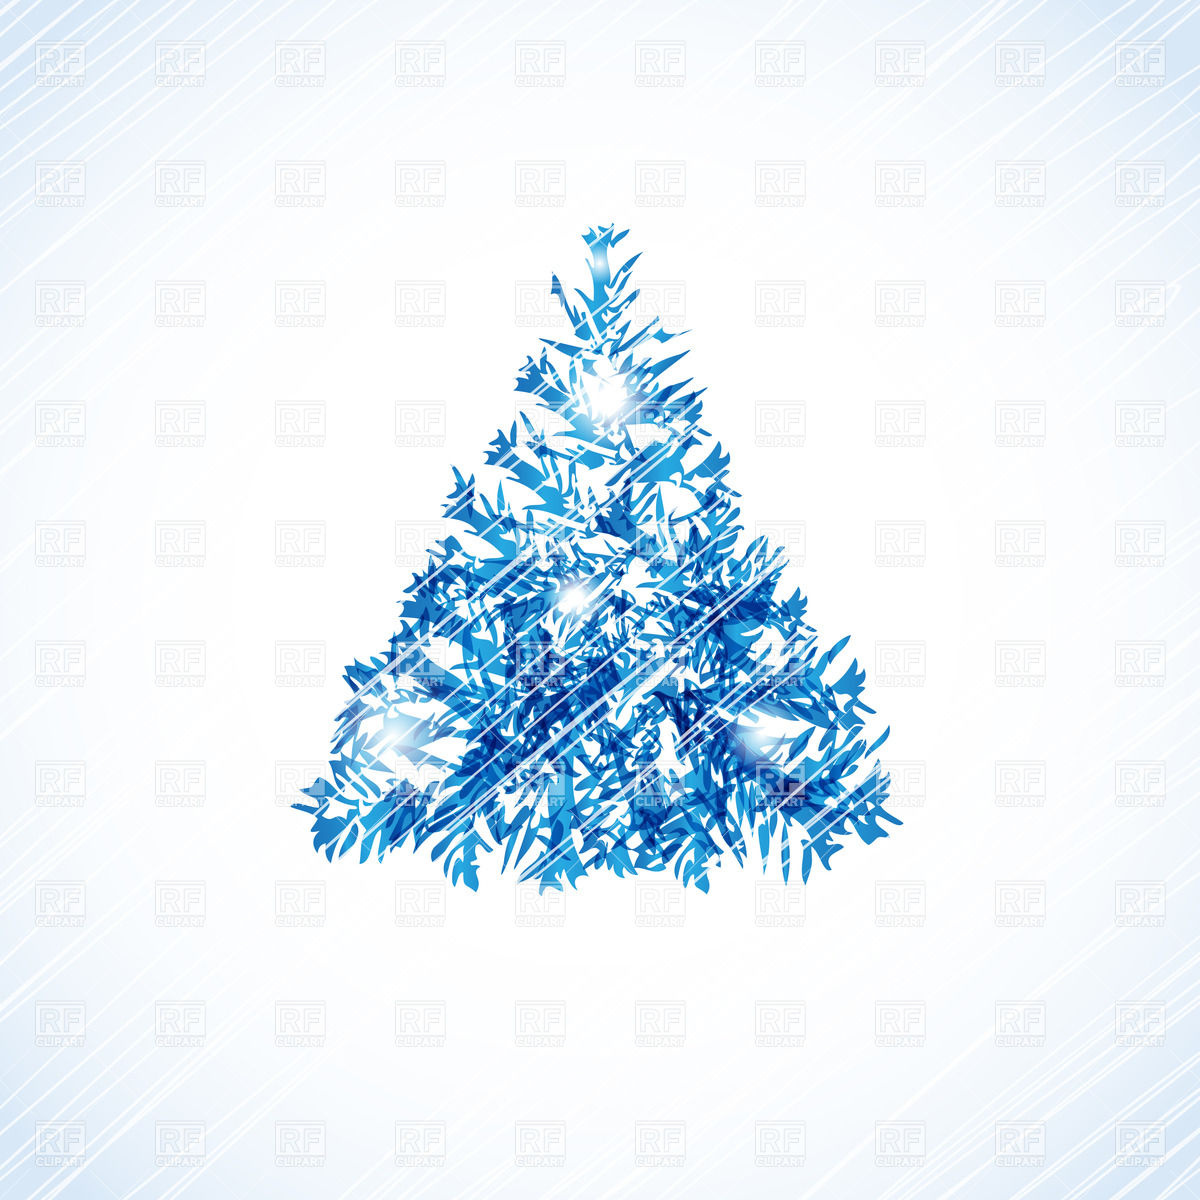 Abstract Christmas Tree Made Of Scratches And Scribbles Download